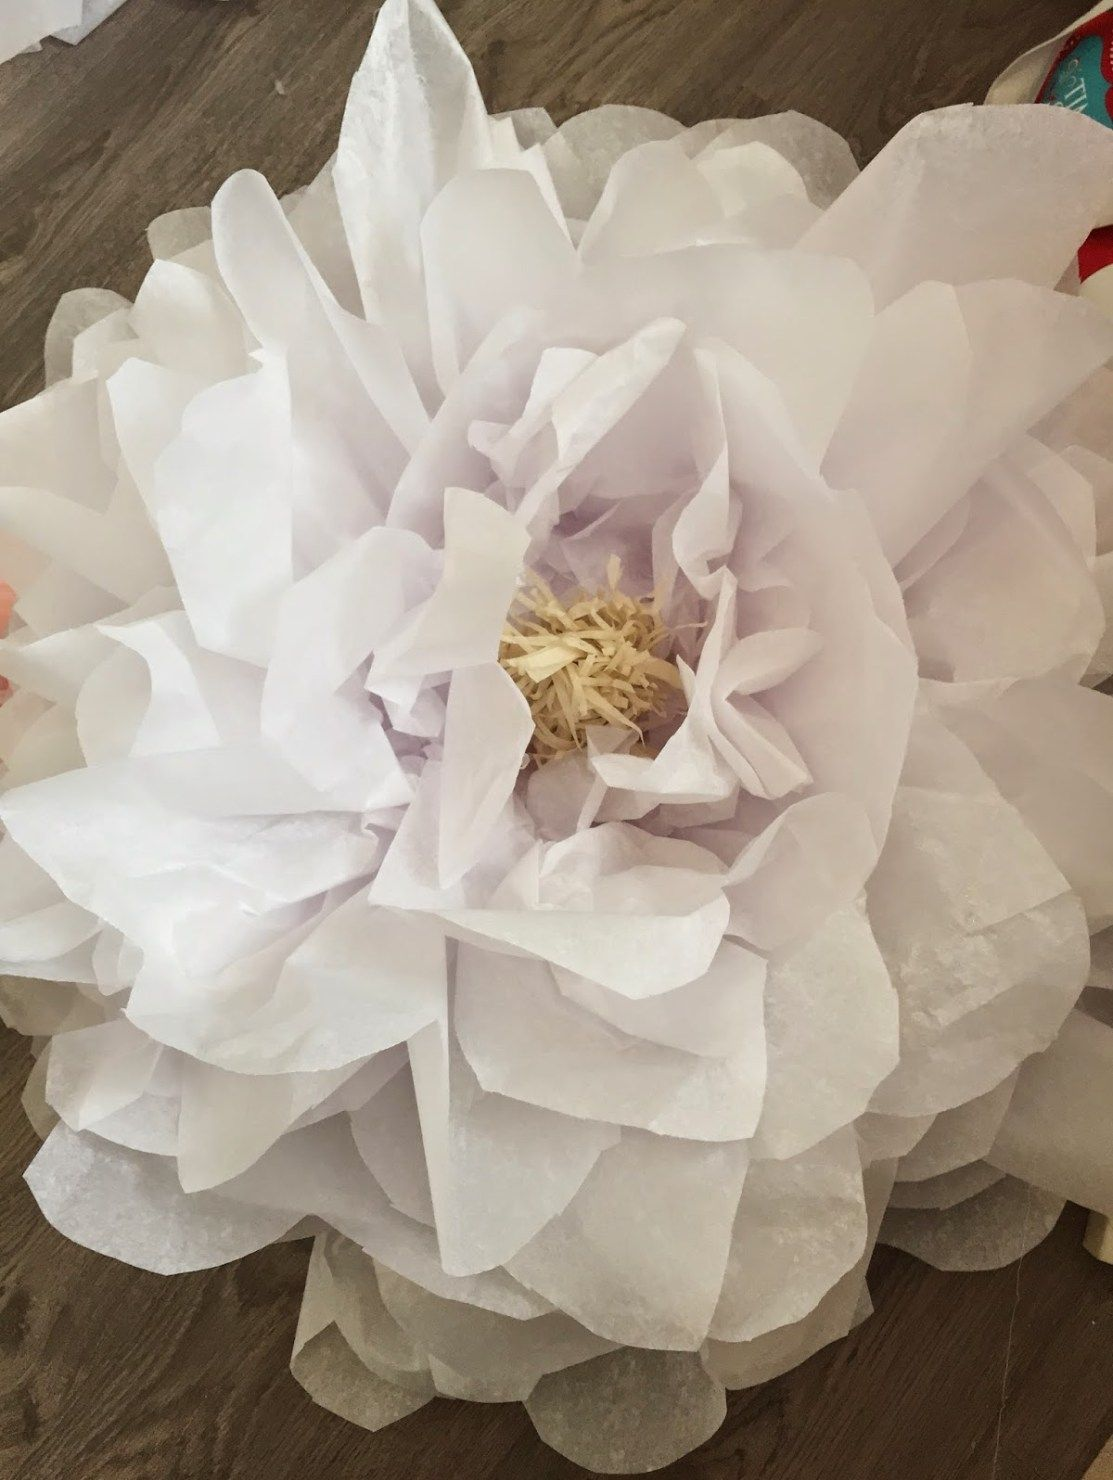 How to make giant tissue paper flowers · The Glitzy Pear #giantpaperflowers